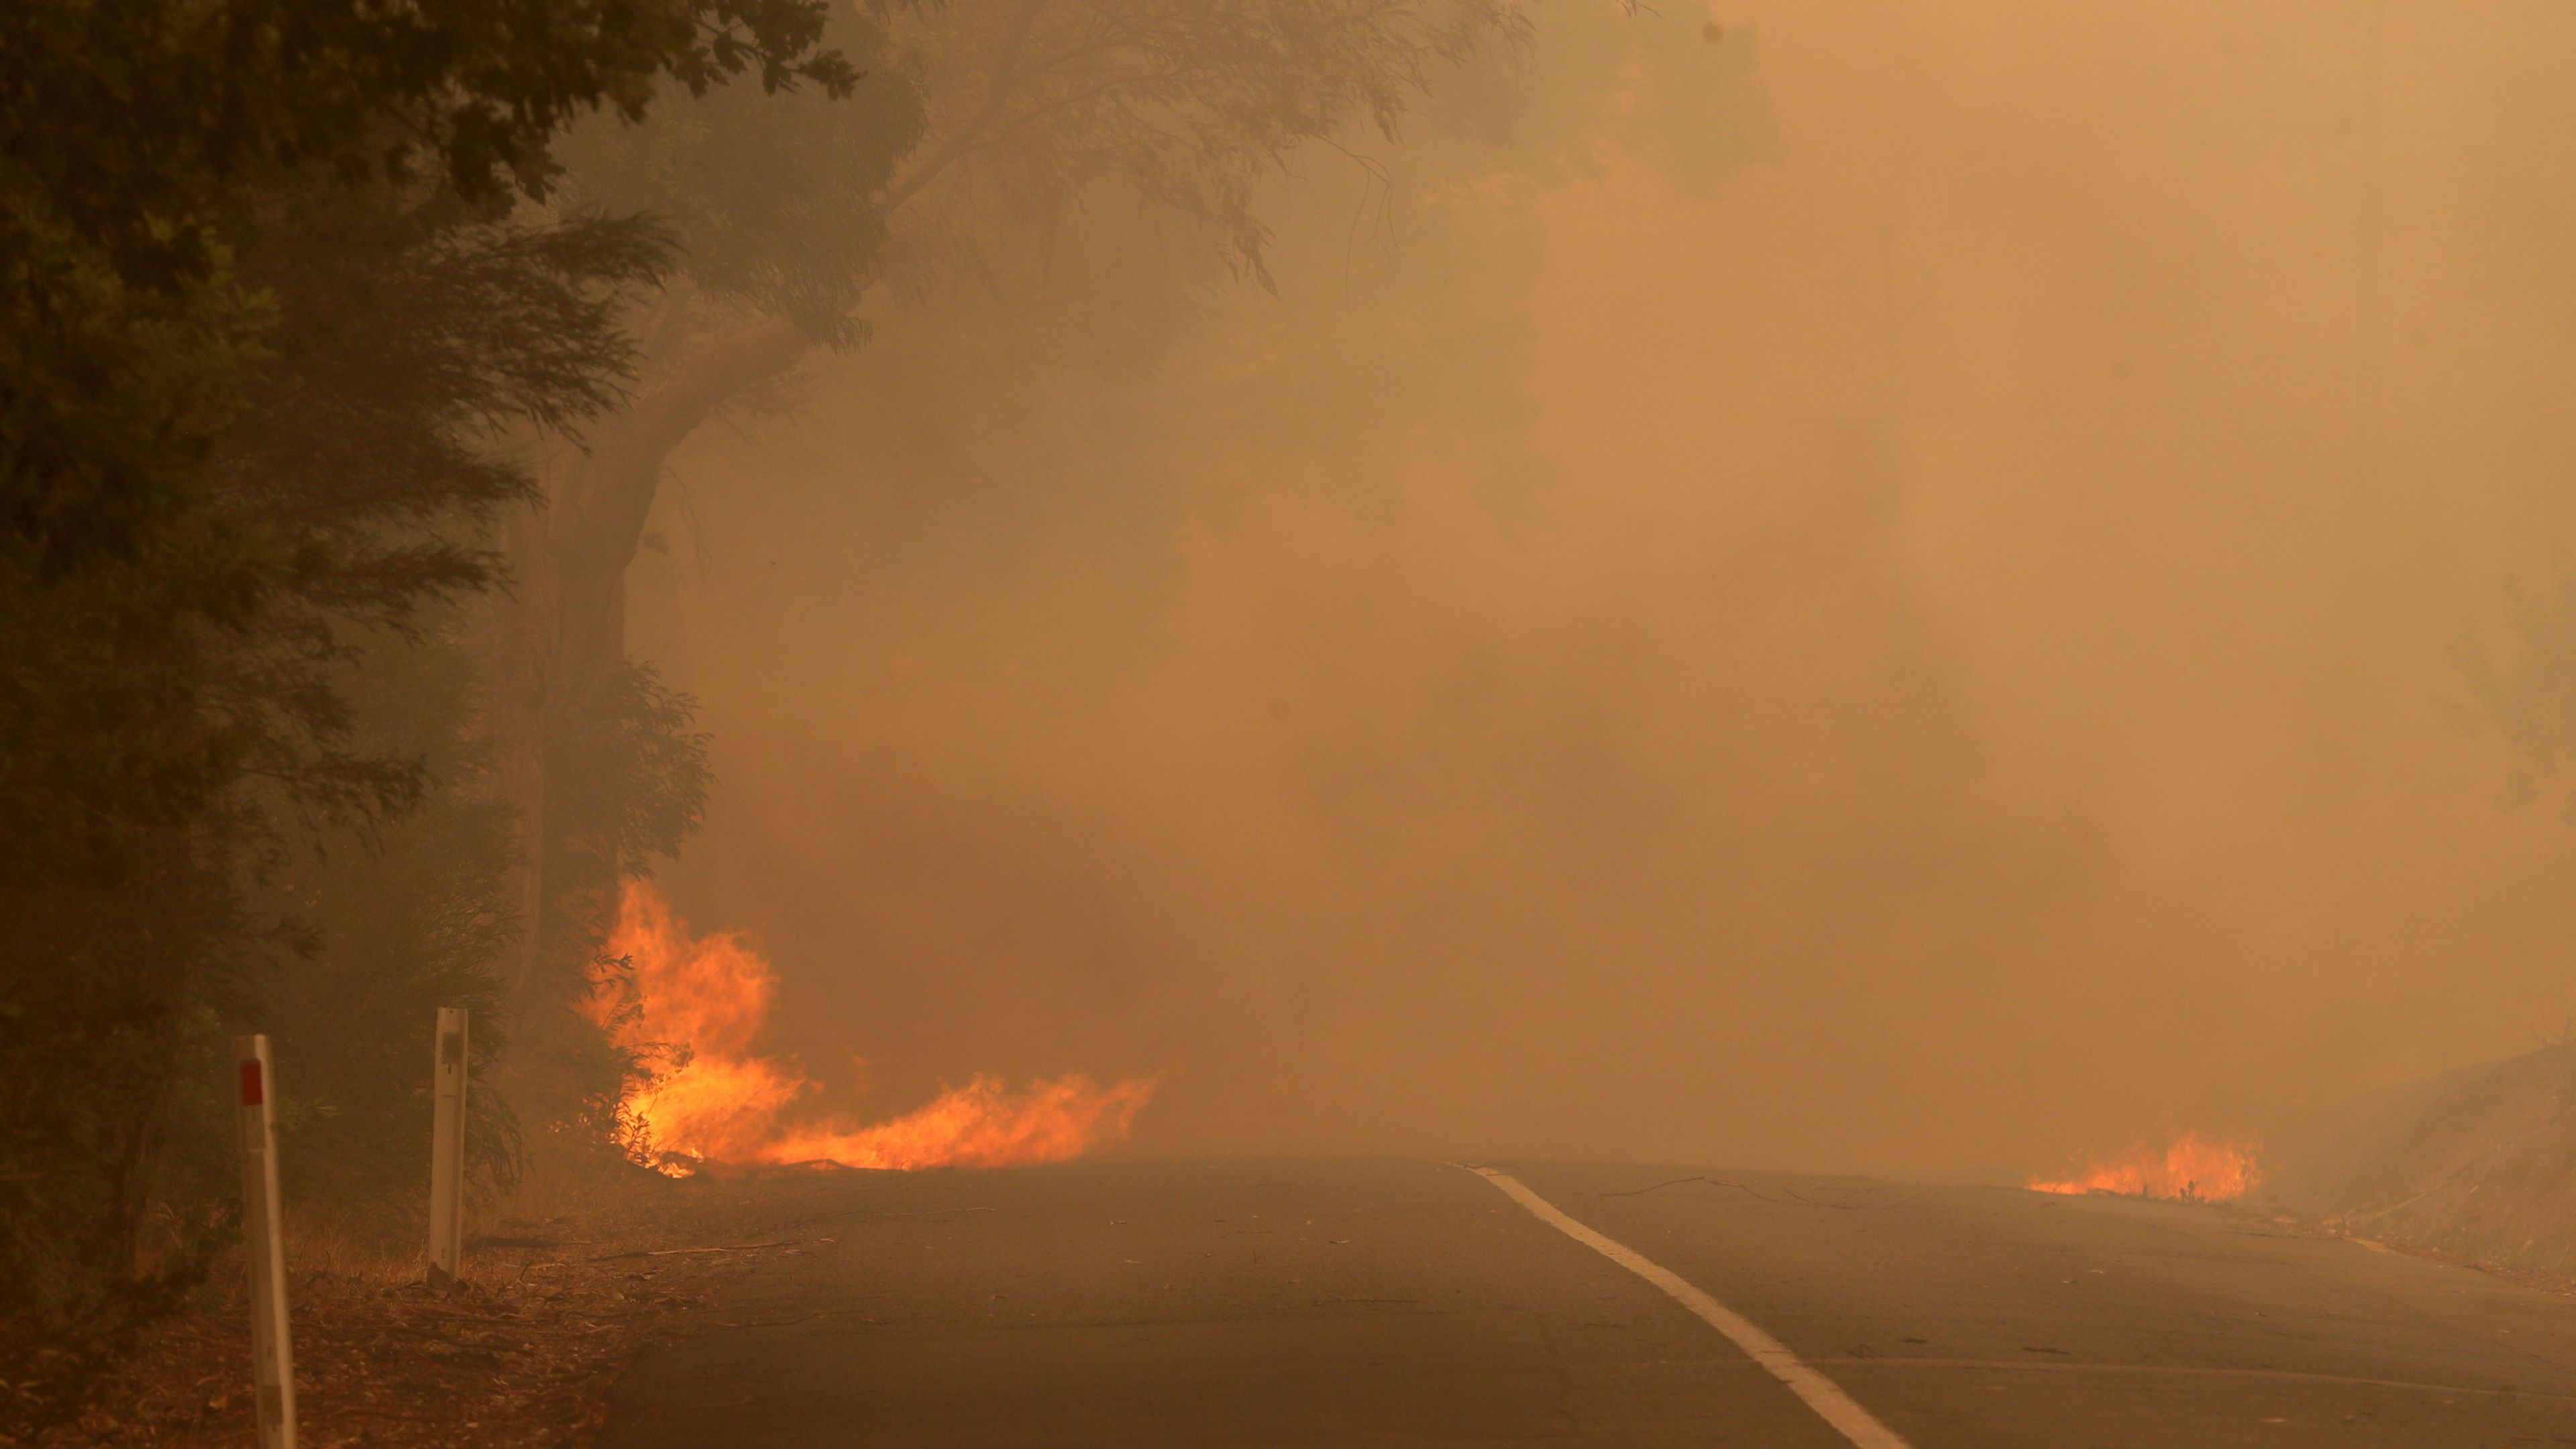 Falling tree sparked deadly SA bushfire